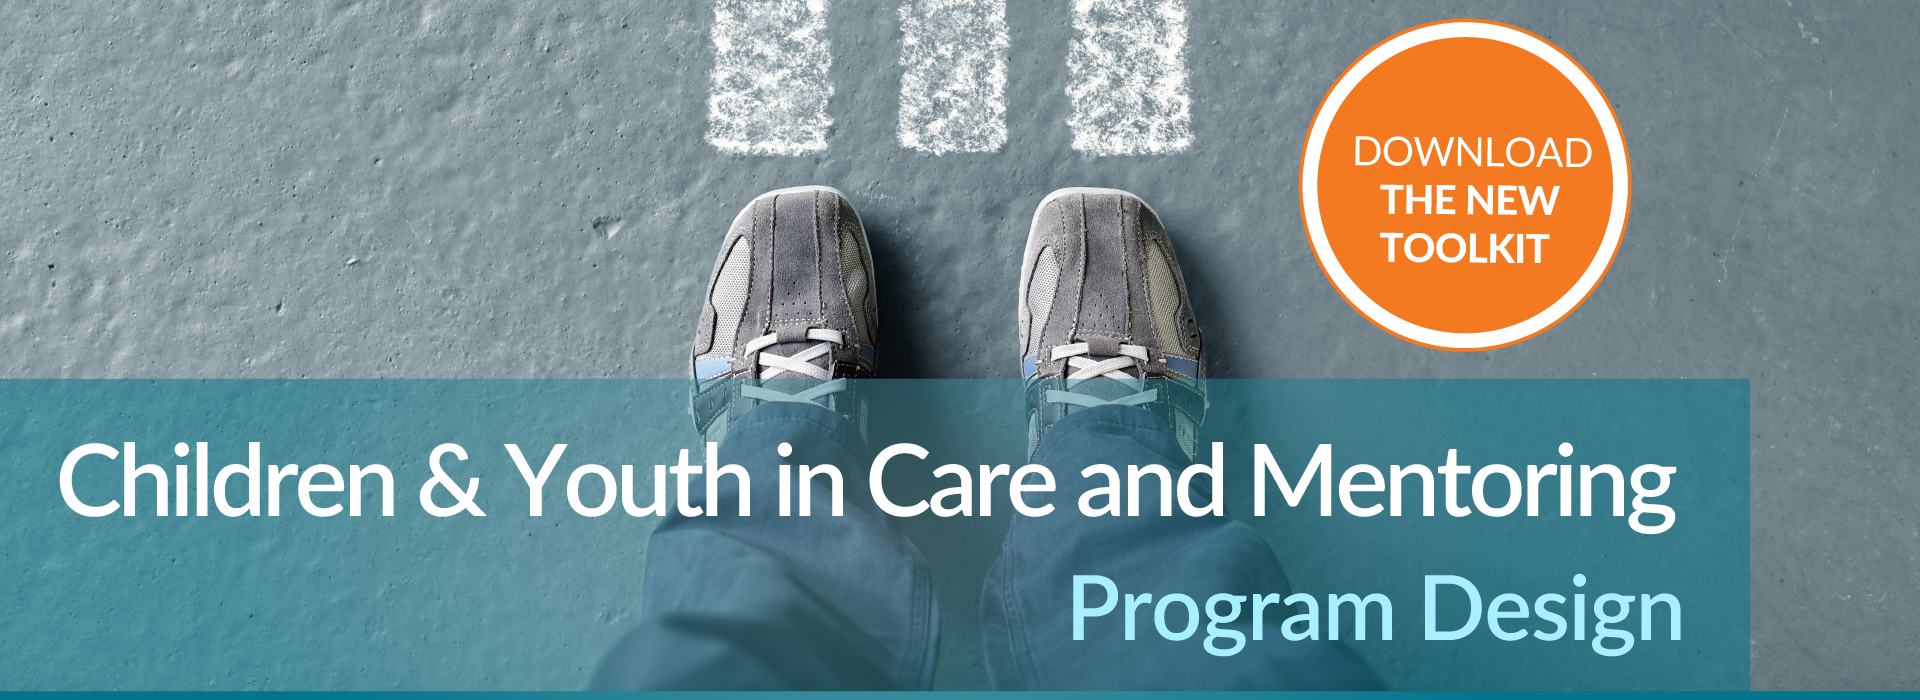 Youth in Care Program Design Download